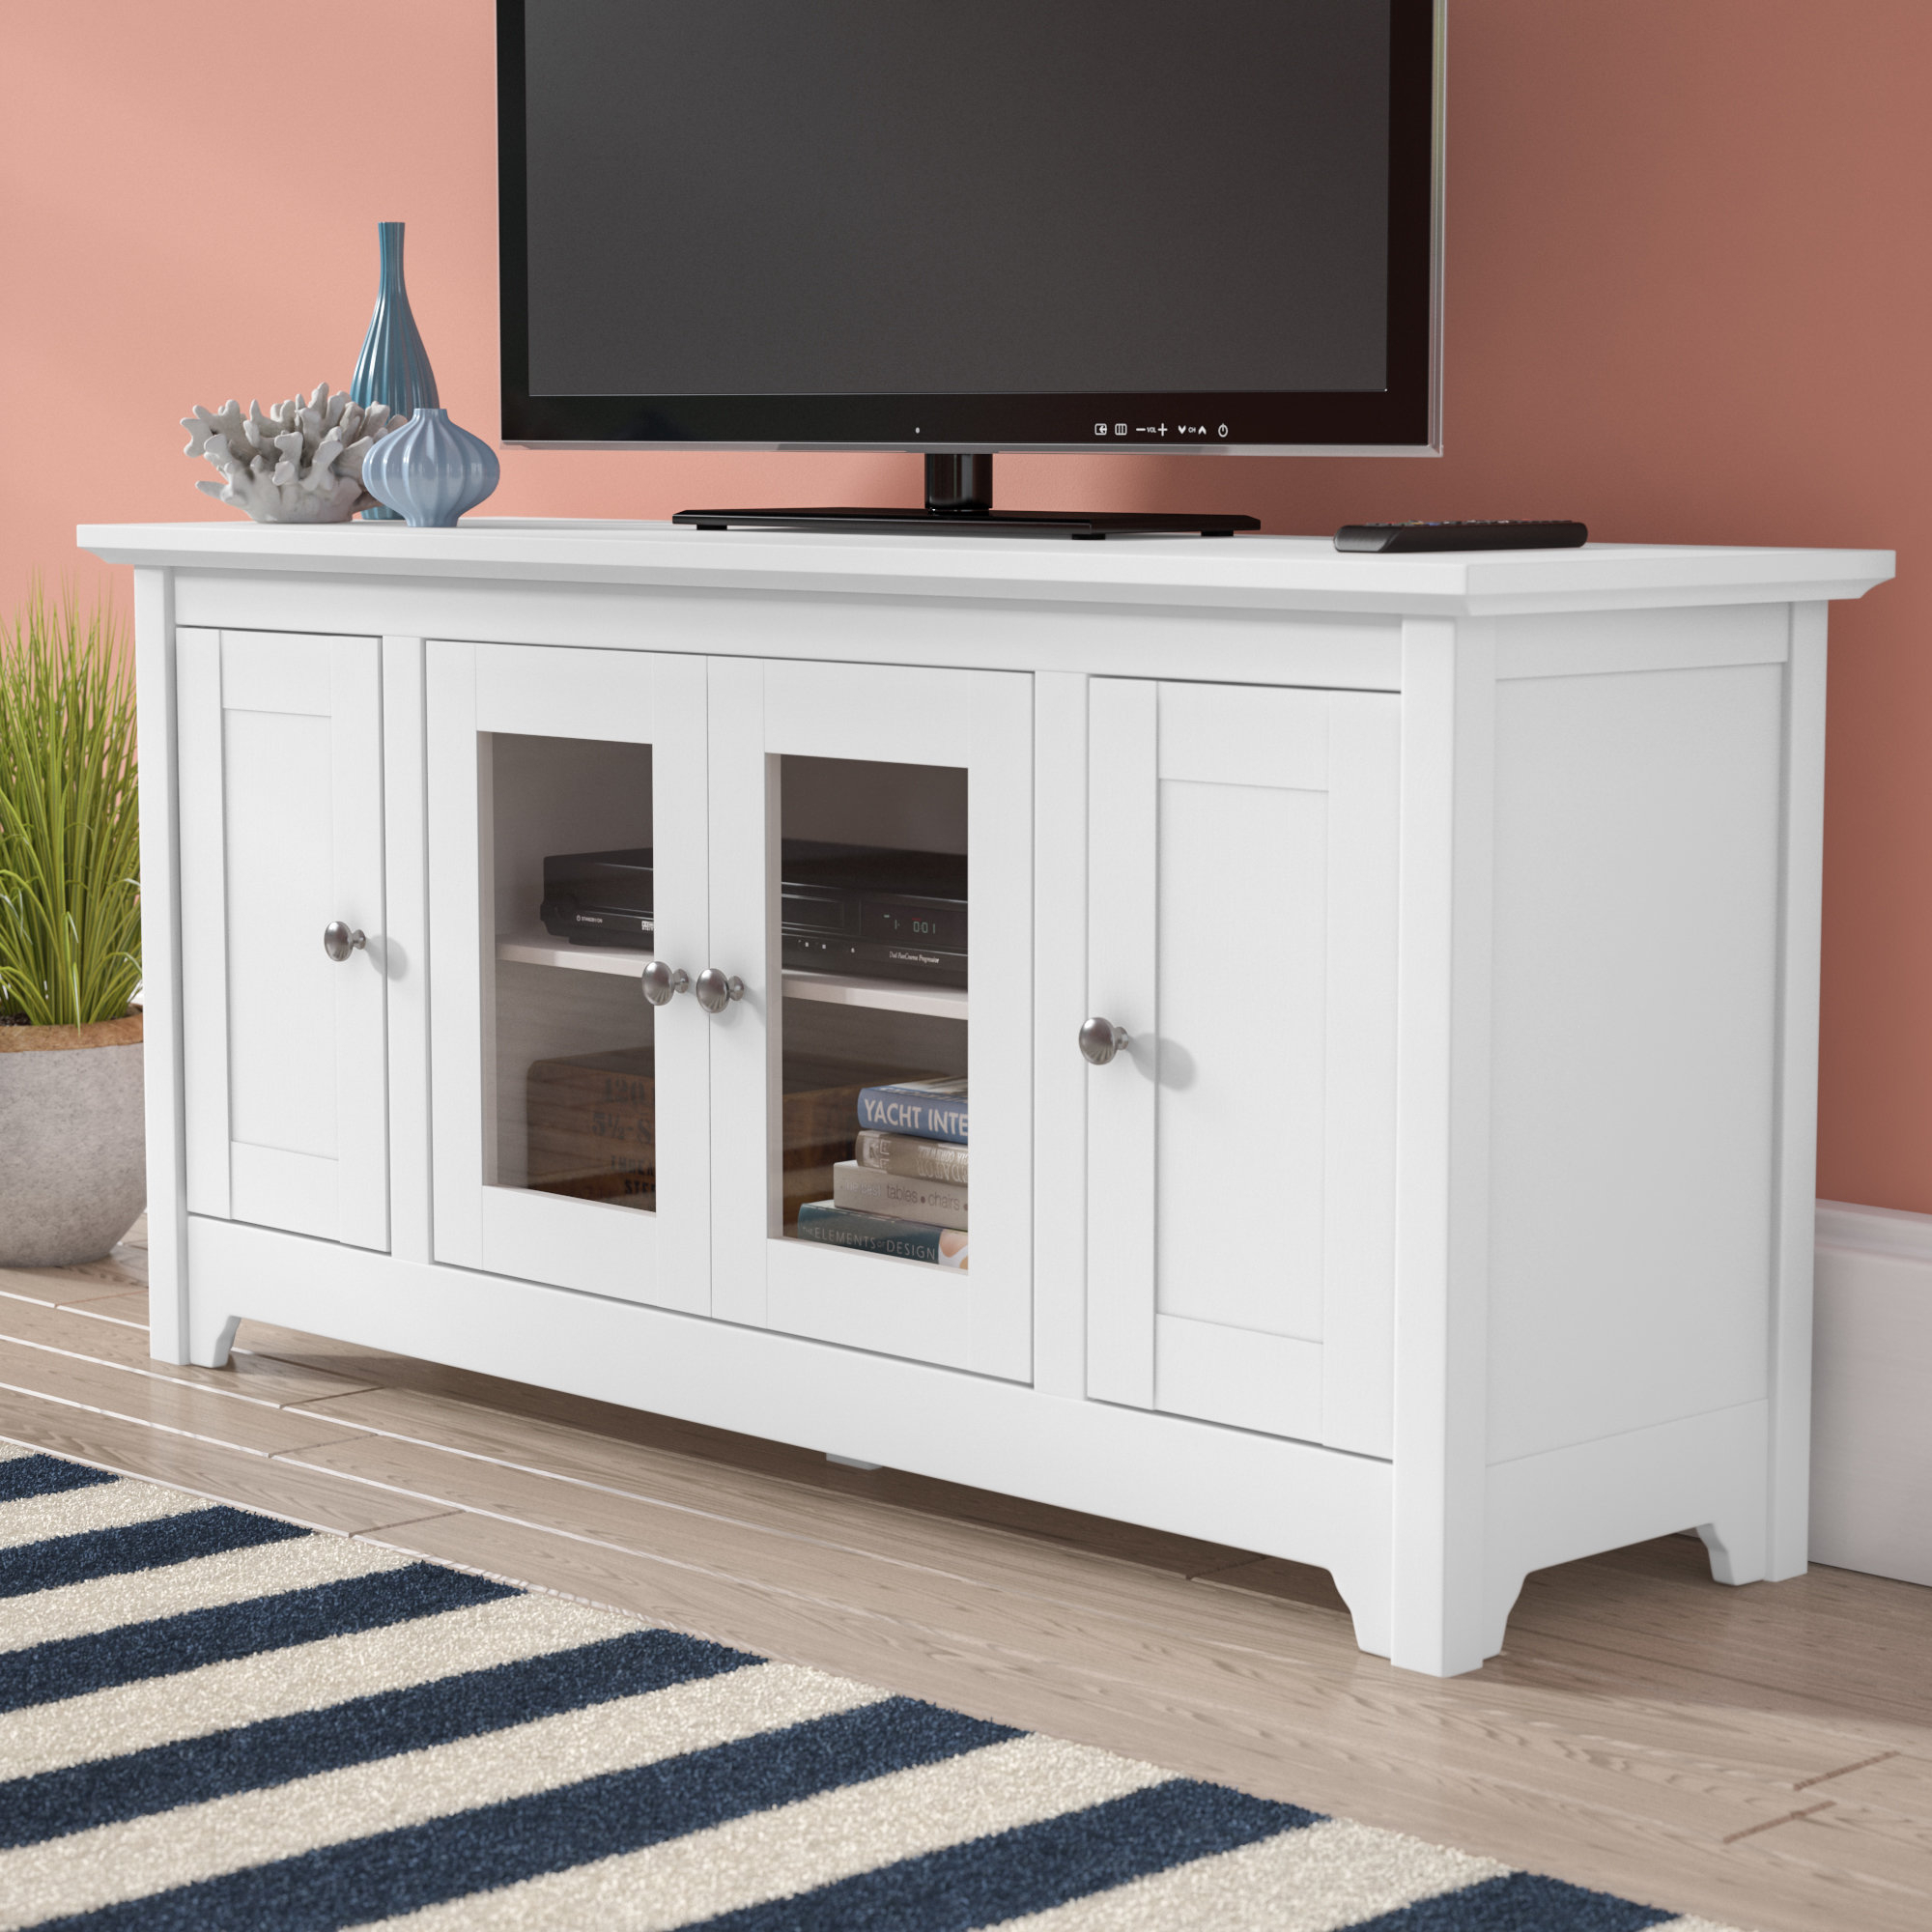 Tv Stands & Entertainment Centers You'll Love | Wayfair Inside Kenzie 72 Inch Open Display Tv Stands (View 13 of 30)